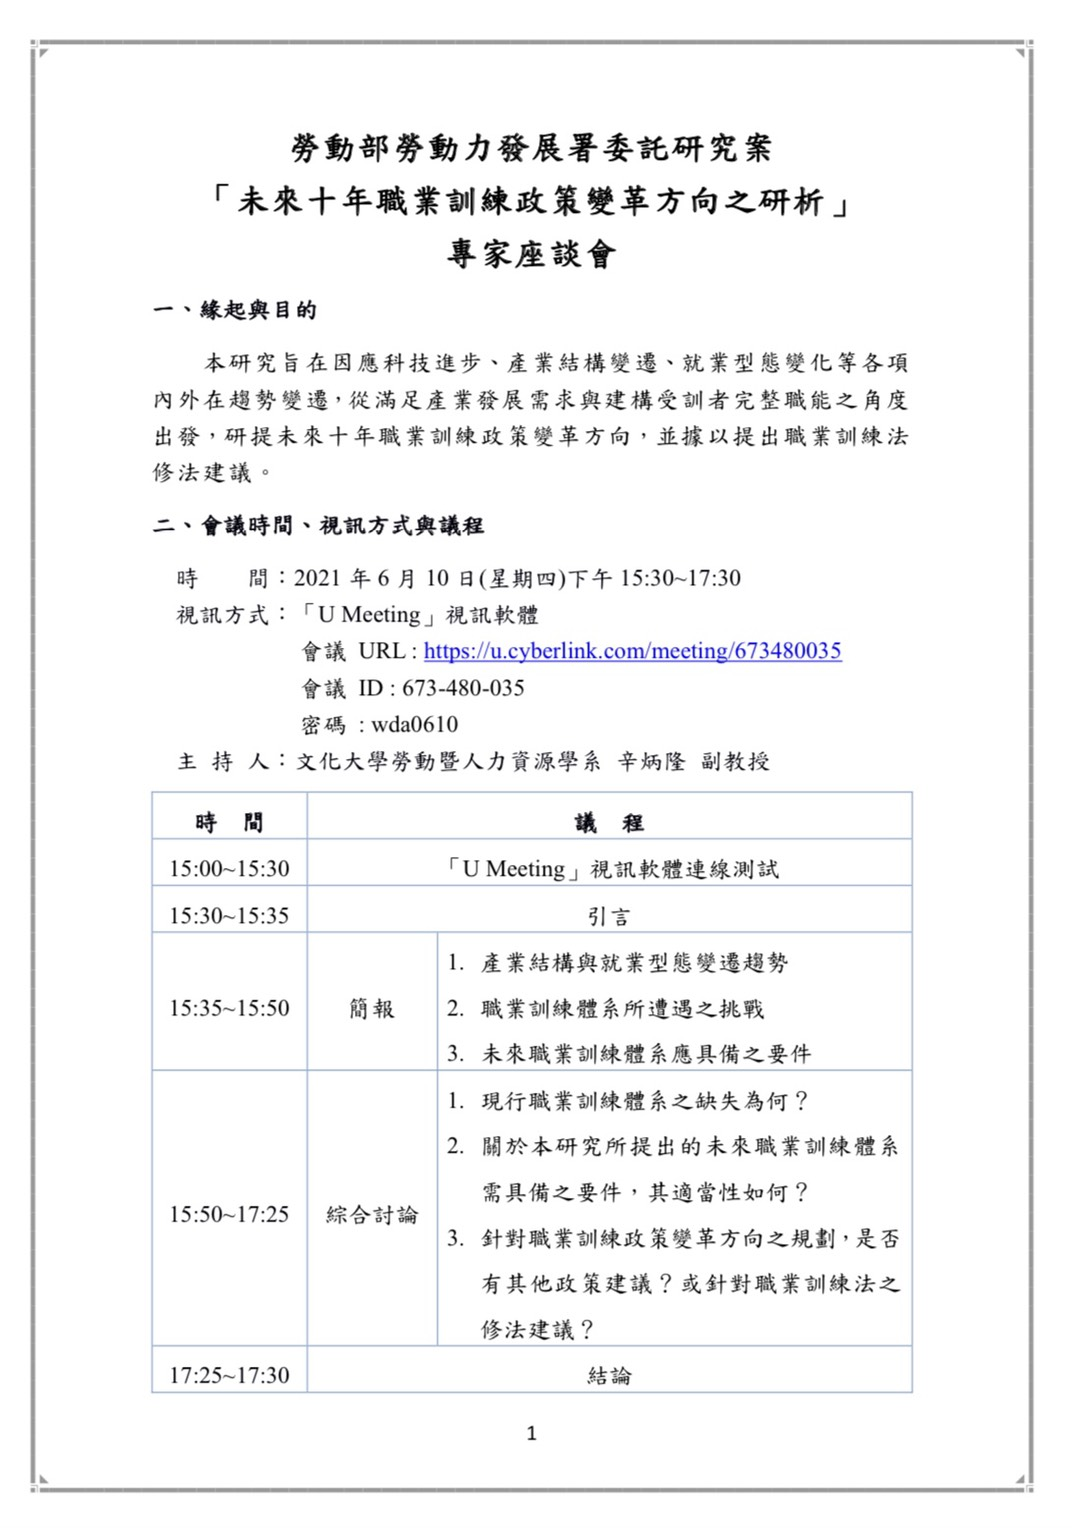 """Association of Labor and Development Association """"Vocational Training Policy Reform in the Next Ten Years"""" Symposium"""